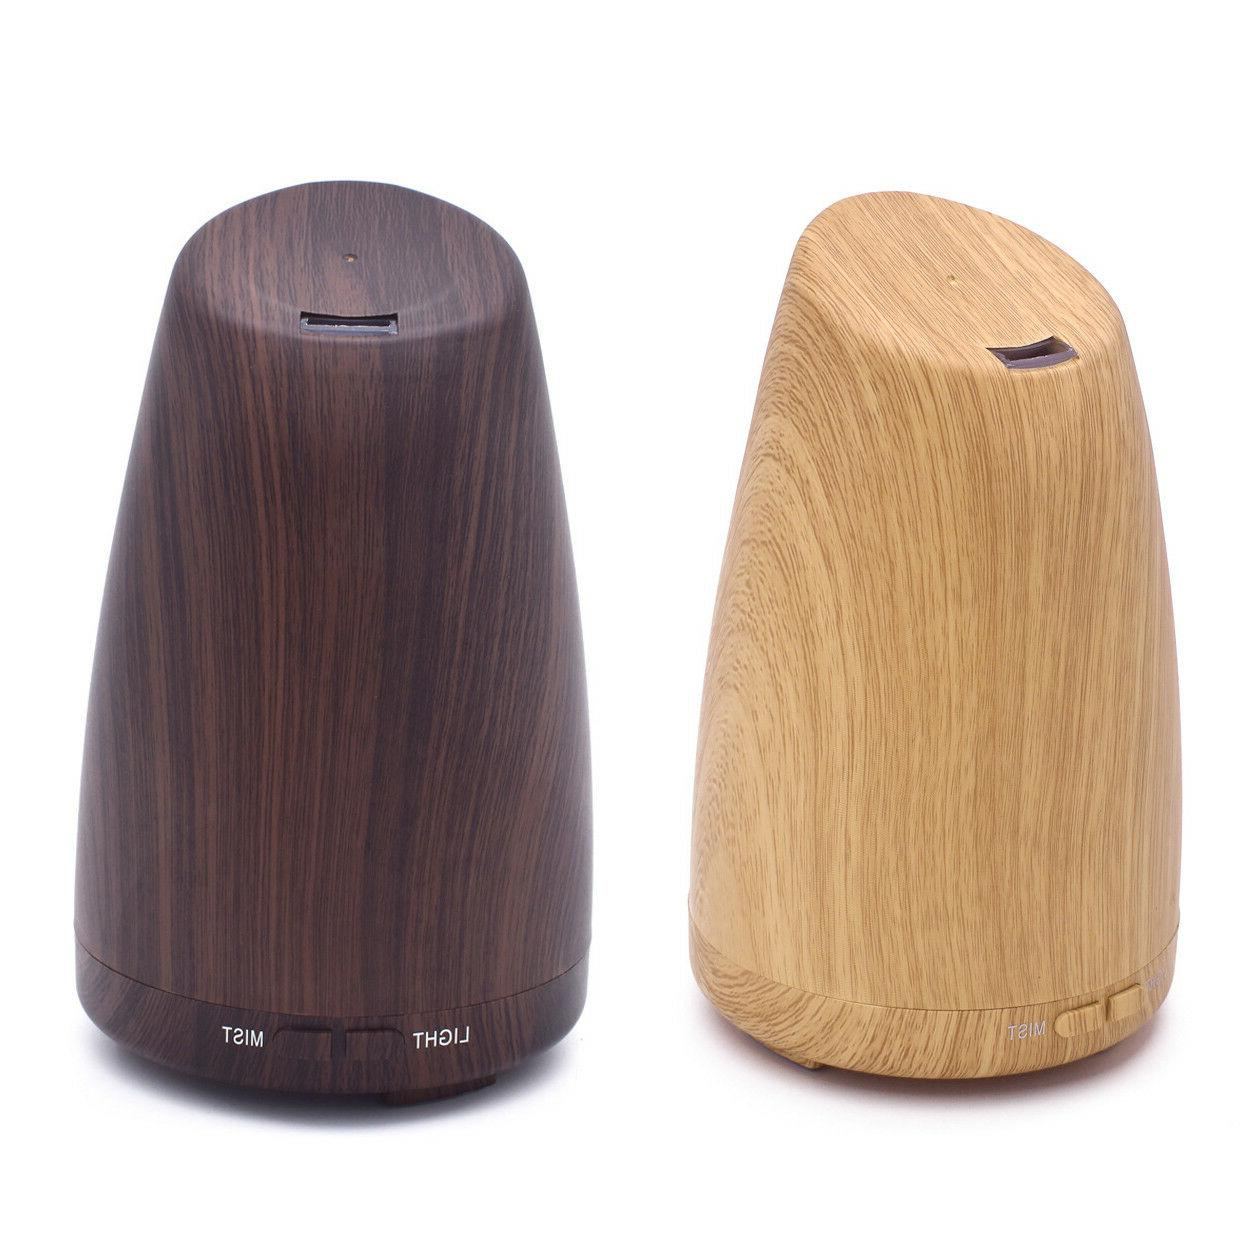 100ml aromatherapy essential oil diffuser portable cool